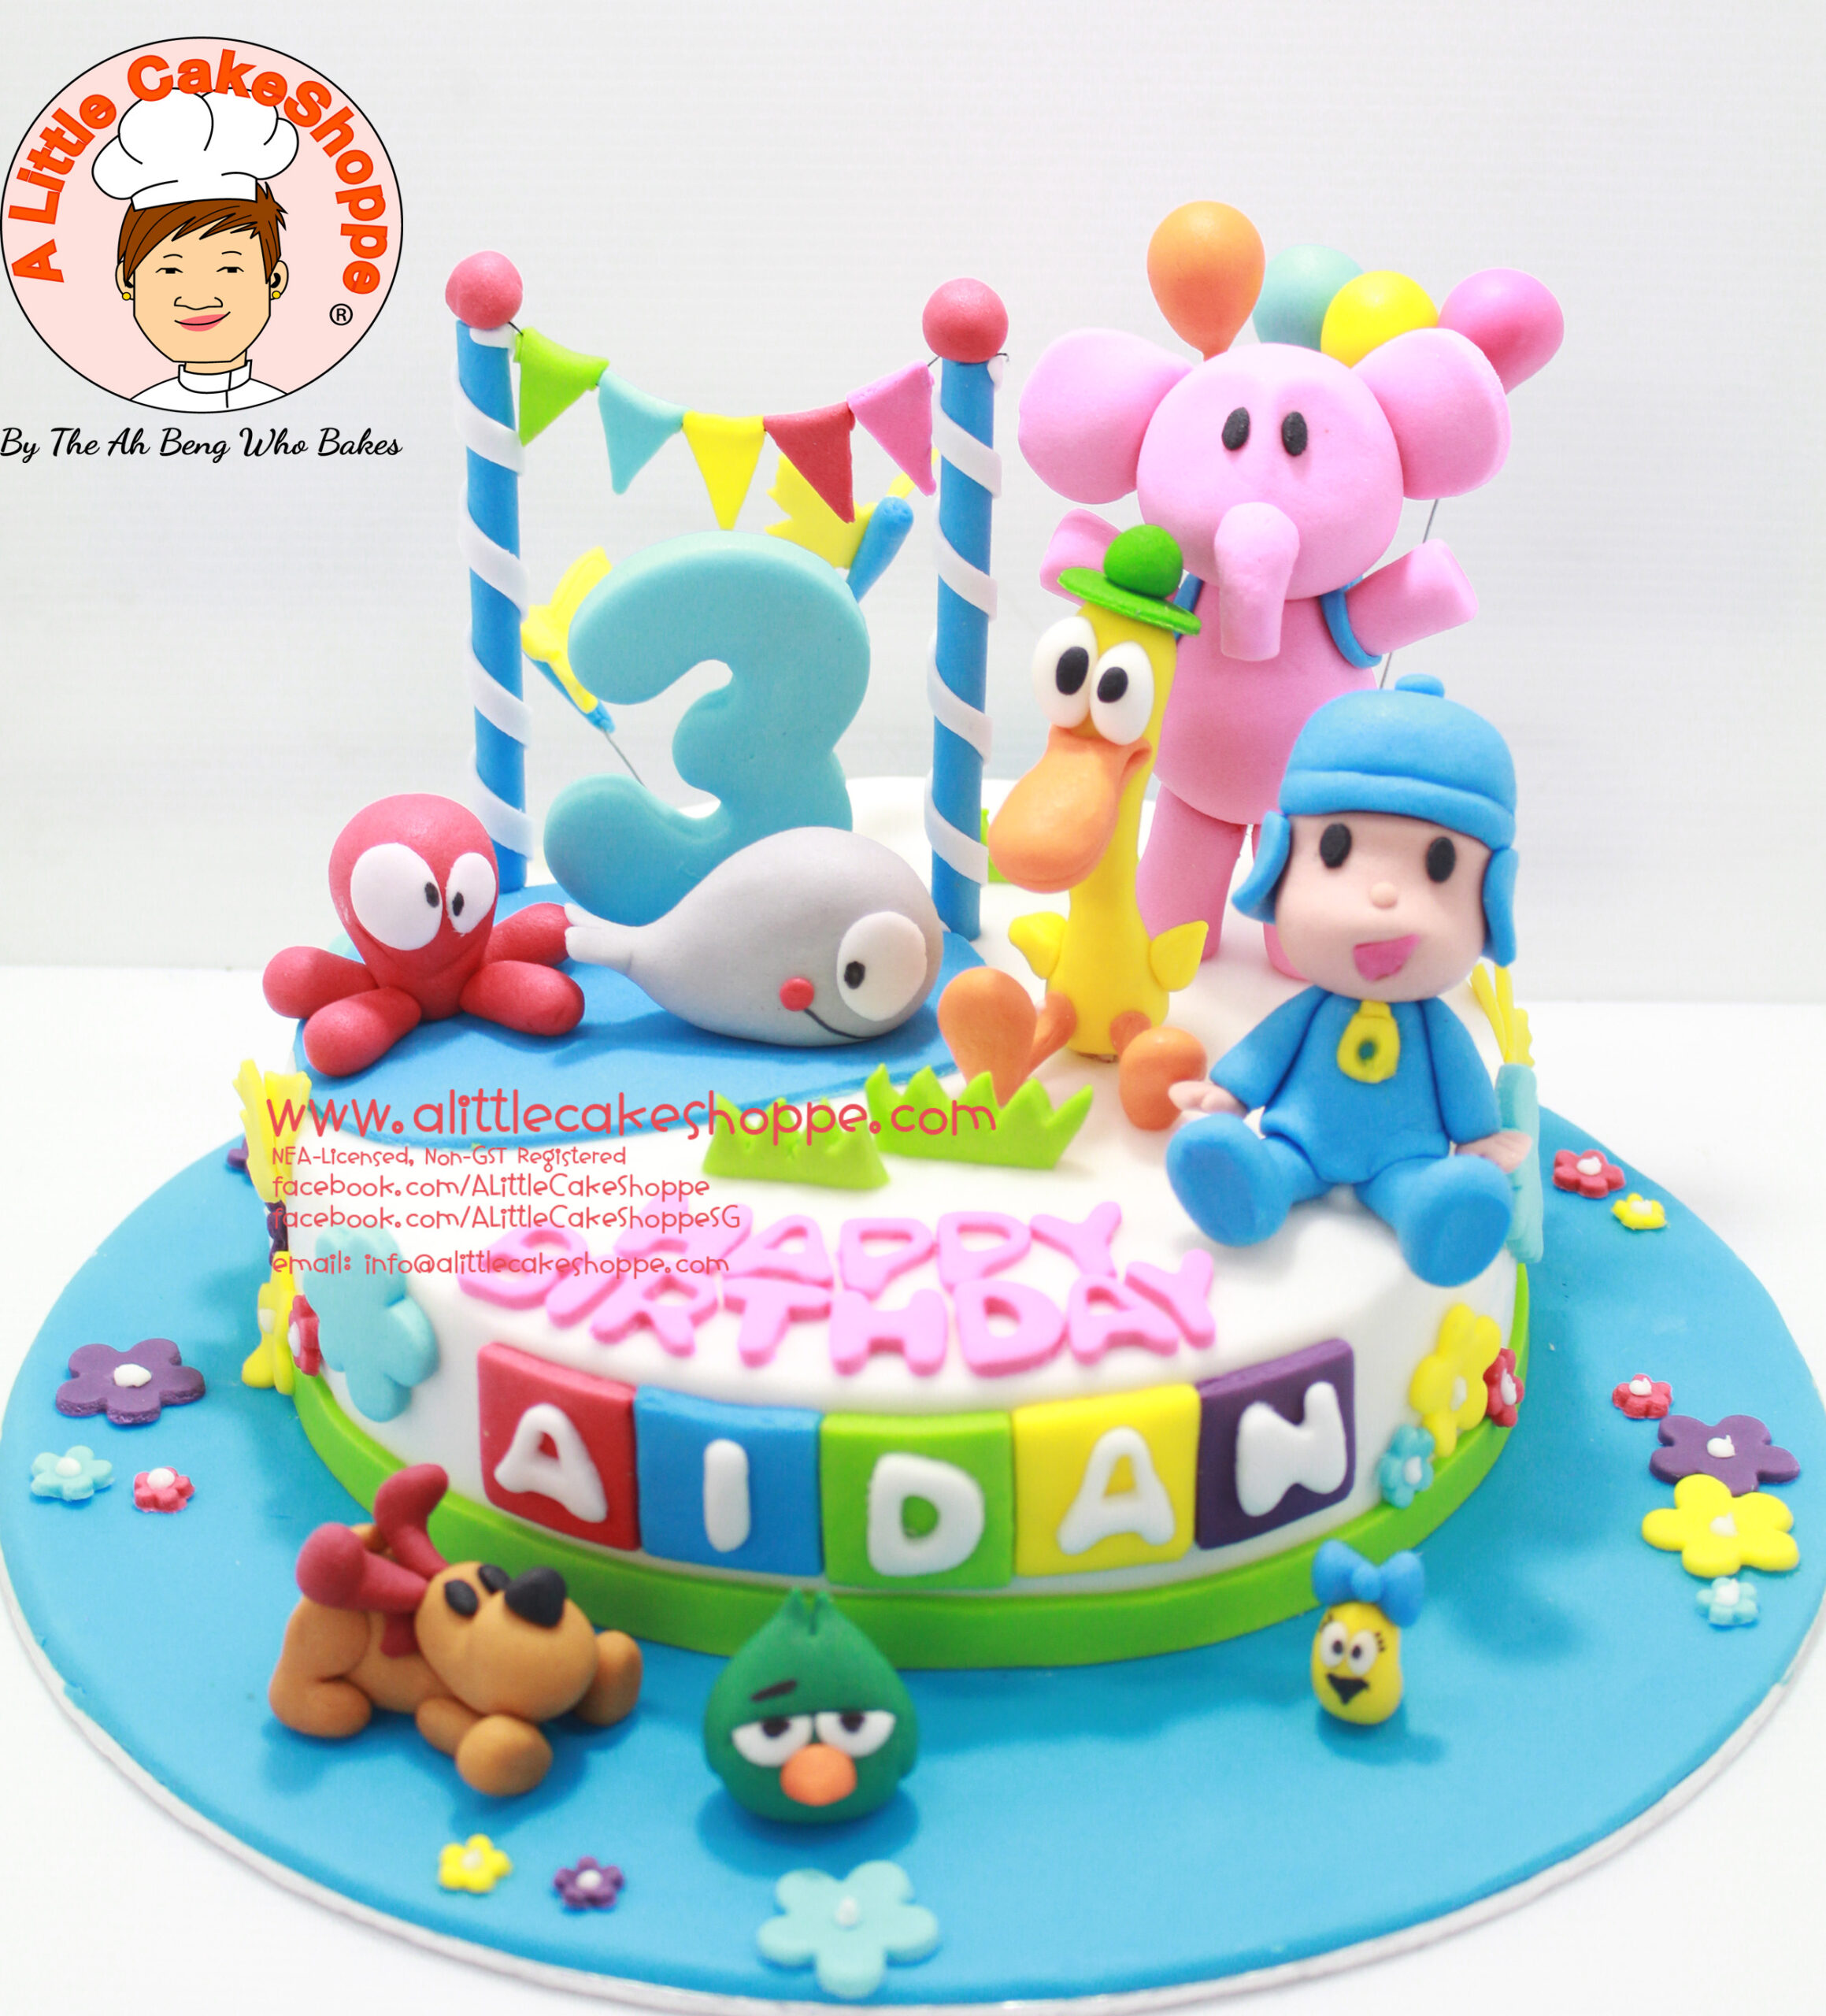 Best Customised Cake Shop Singapore custom cake 2D 3D birthday cake cupcakes desserts wedding corporate events anniversary 1st birthday 21st birthday fondant fresh cream buttercream cakes alittlecakeshoppe a little cake shoppe compliments review singapore bakers SG cake shop cakeshop ah beng who bakes pocoyo